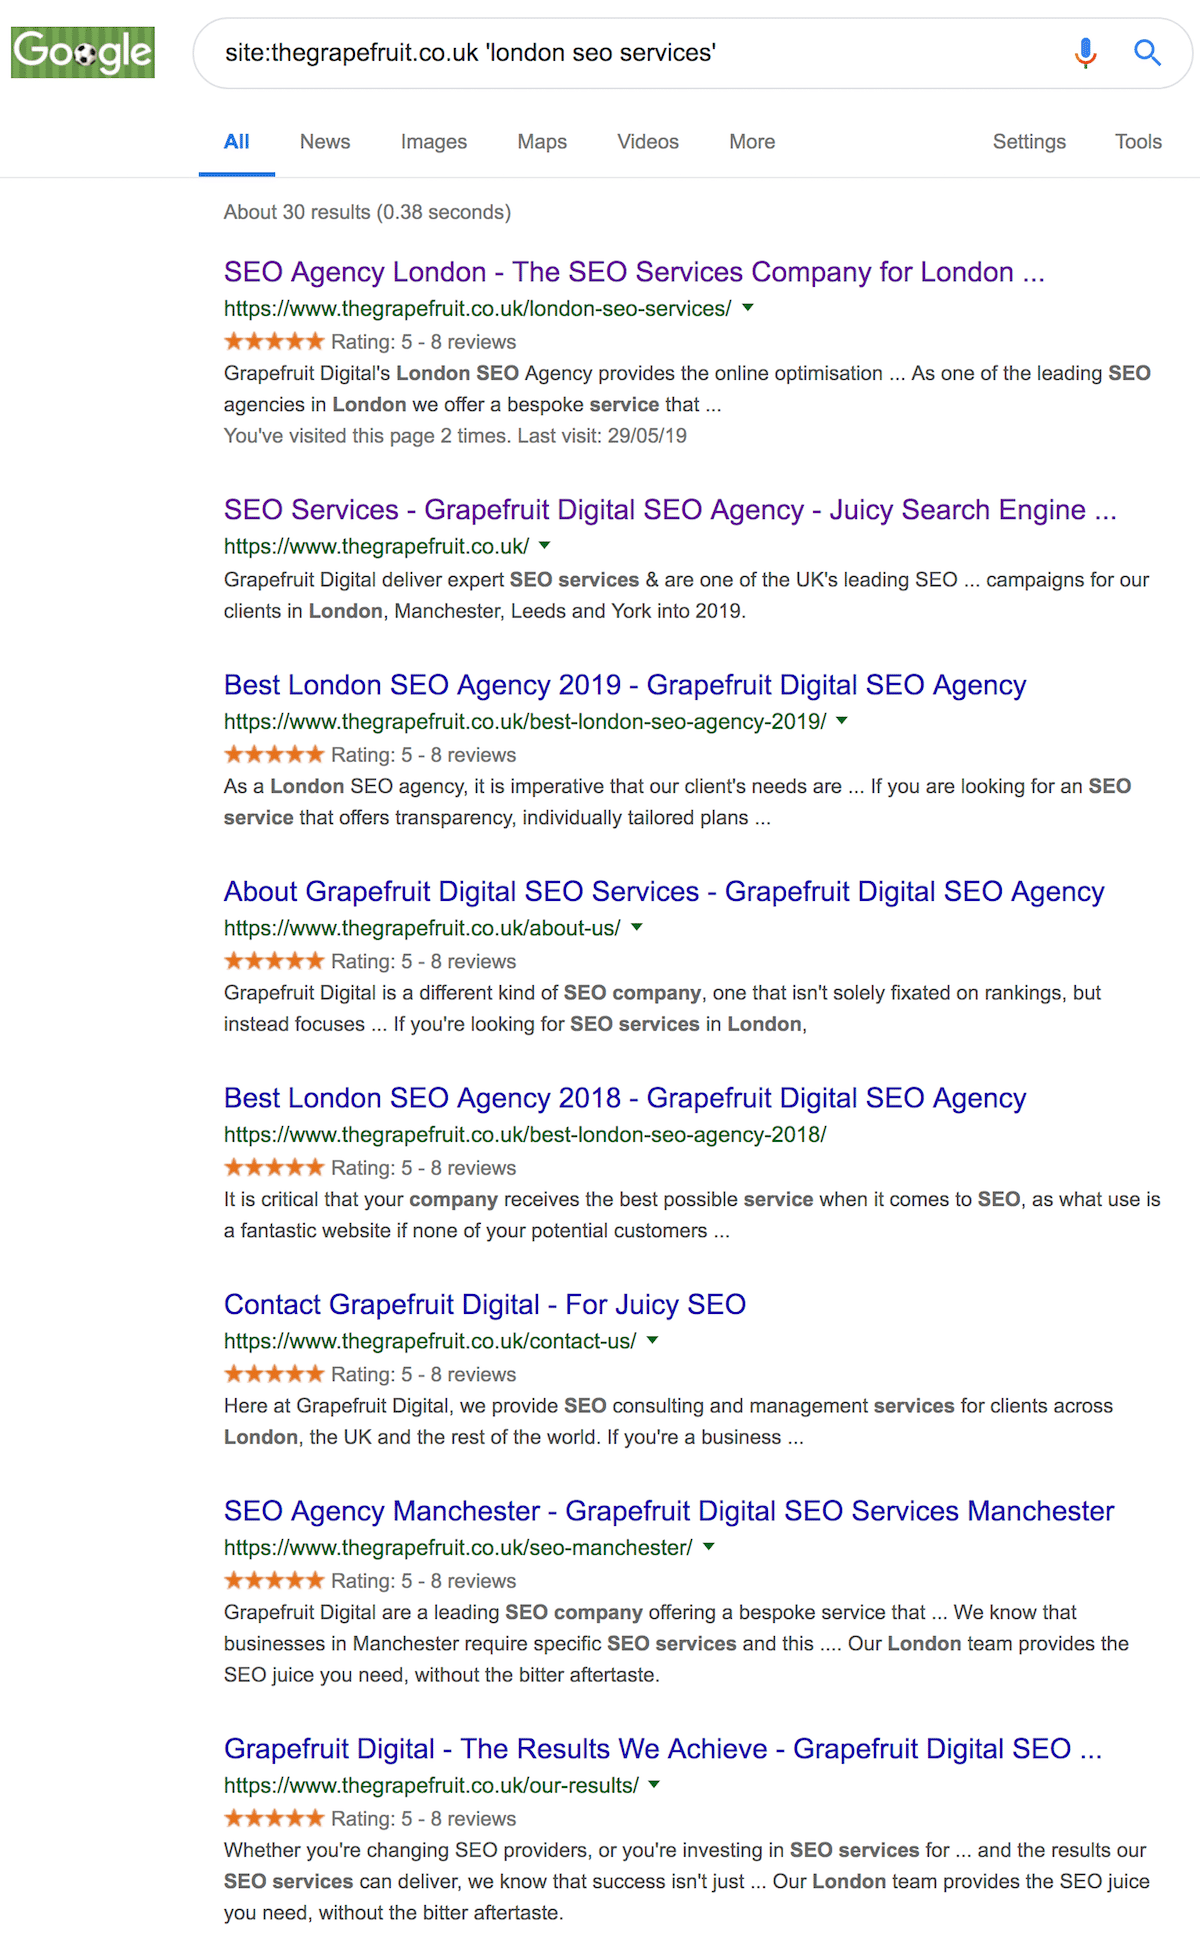 Internal Linking Search Results